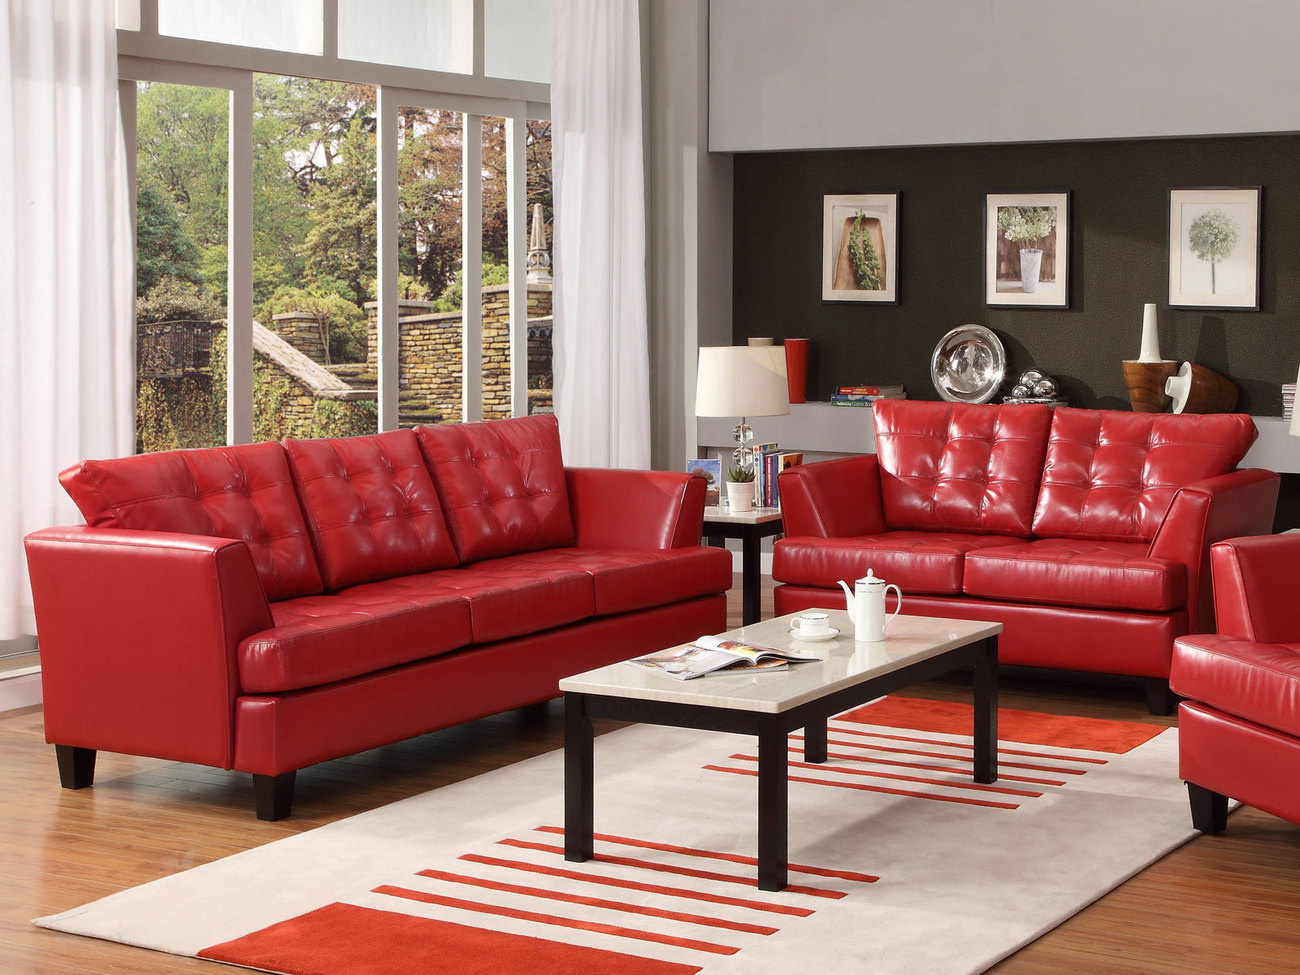 Red Living Room Ideas To Decorate Modern Living Room Sets. How To Make Kitchen Cabinets Look New Again. Glass Kitchen Cabinet Door Inserts. Kitchen Cabinets At Lowes. How To Install Crown Moulding On Kitchen Cabinets. Kitchen Cabinet Package. Kitchen Cabinet Boxes Wholesale. Paint Colors Kitchen Cabinets. Kitchen Cabinets Refacing Cost